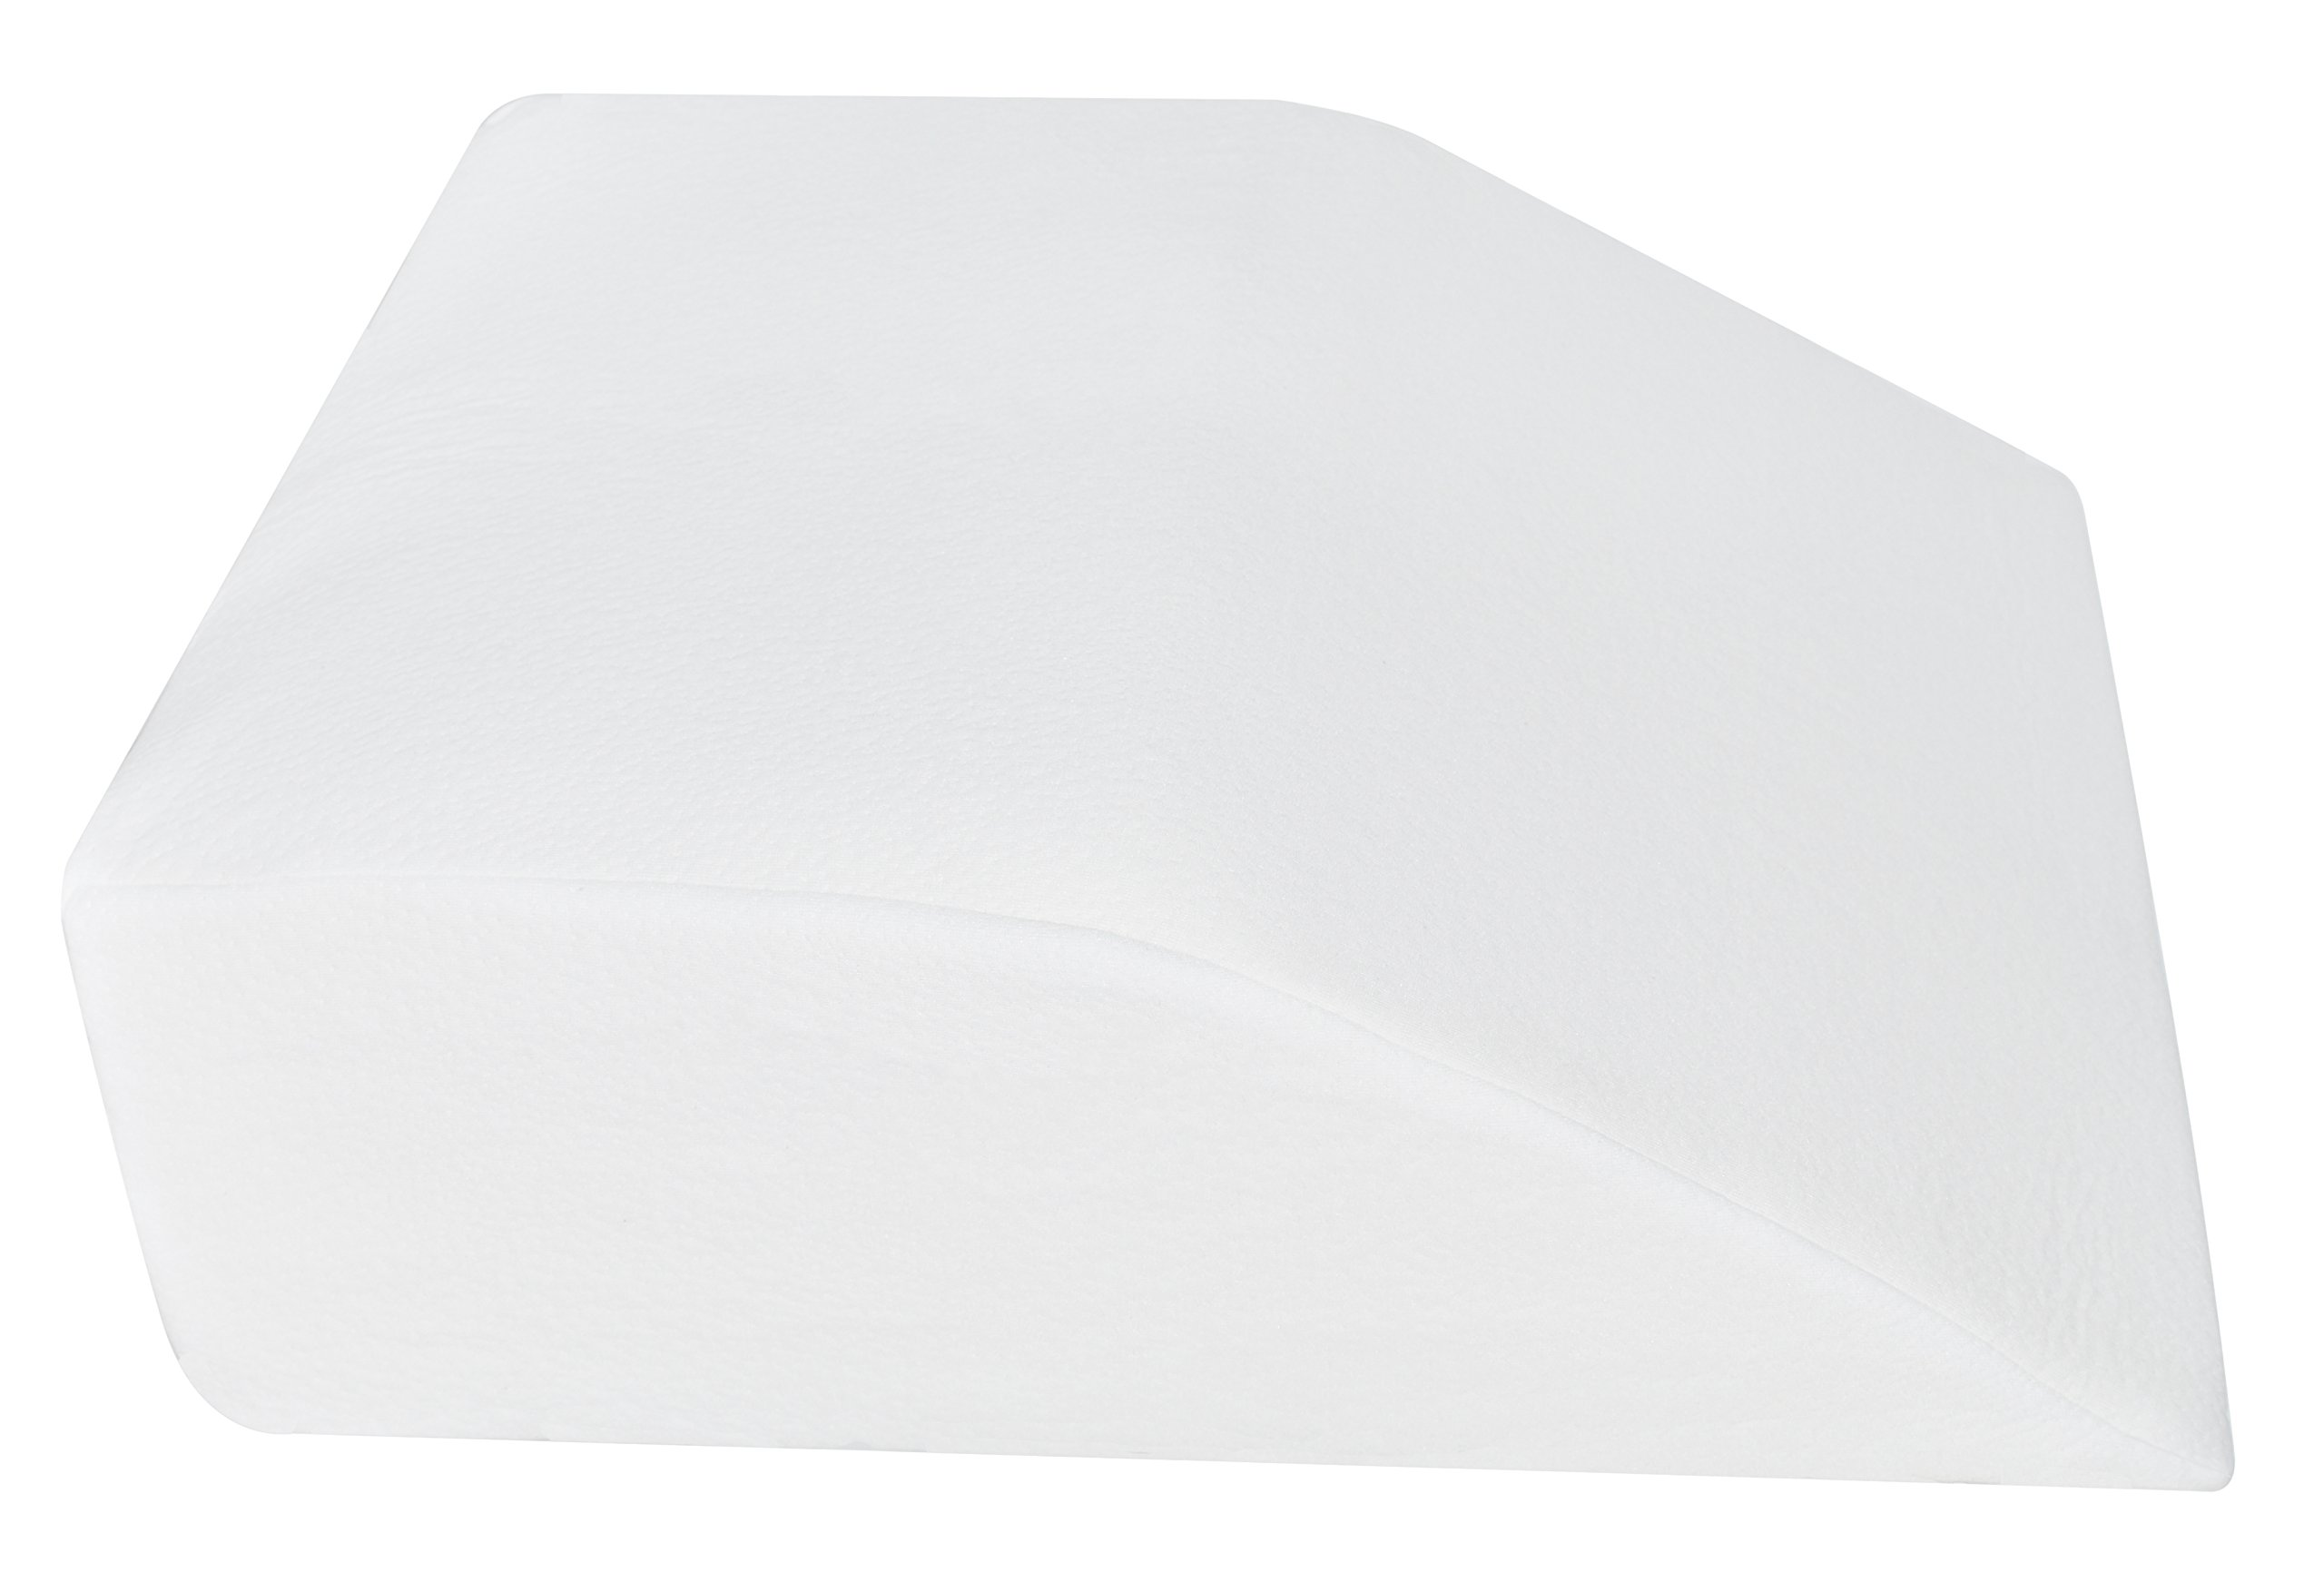 Elevating Leg Rest Pillow for Post Surgery with Memory Foam Top Great for Knee, Hip, Back Pain Relief Recovery from Foot & Ankle Injury Elevator with Washable Breathable Cover 24'' x 21'' x 8'' (White)